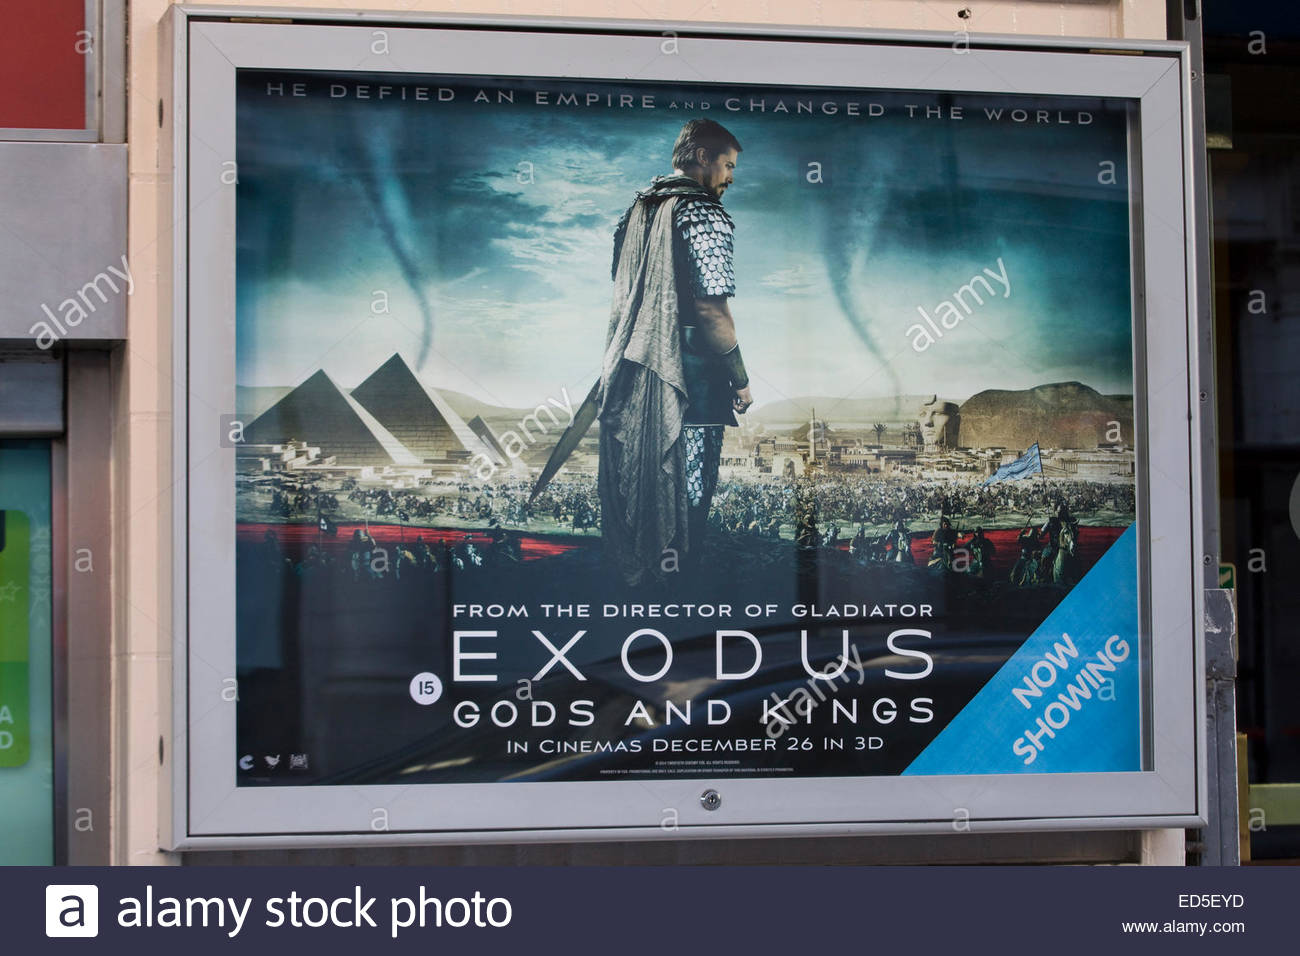 Billboard advertising the movie Exodus Gads and Kings - Stock Image